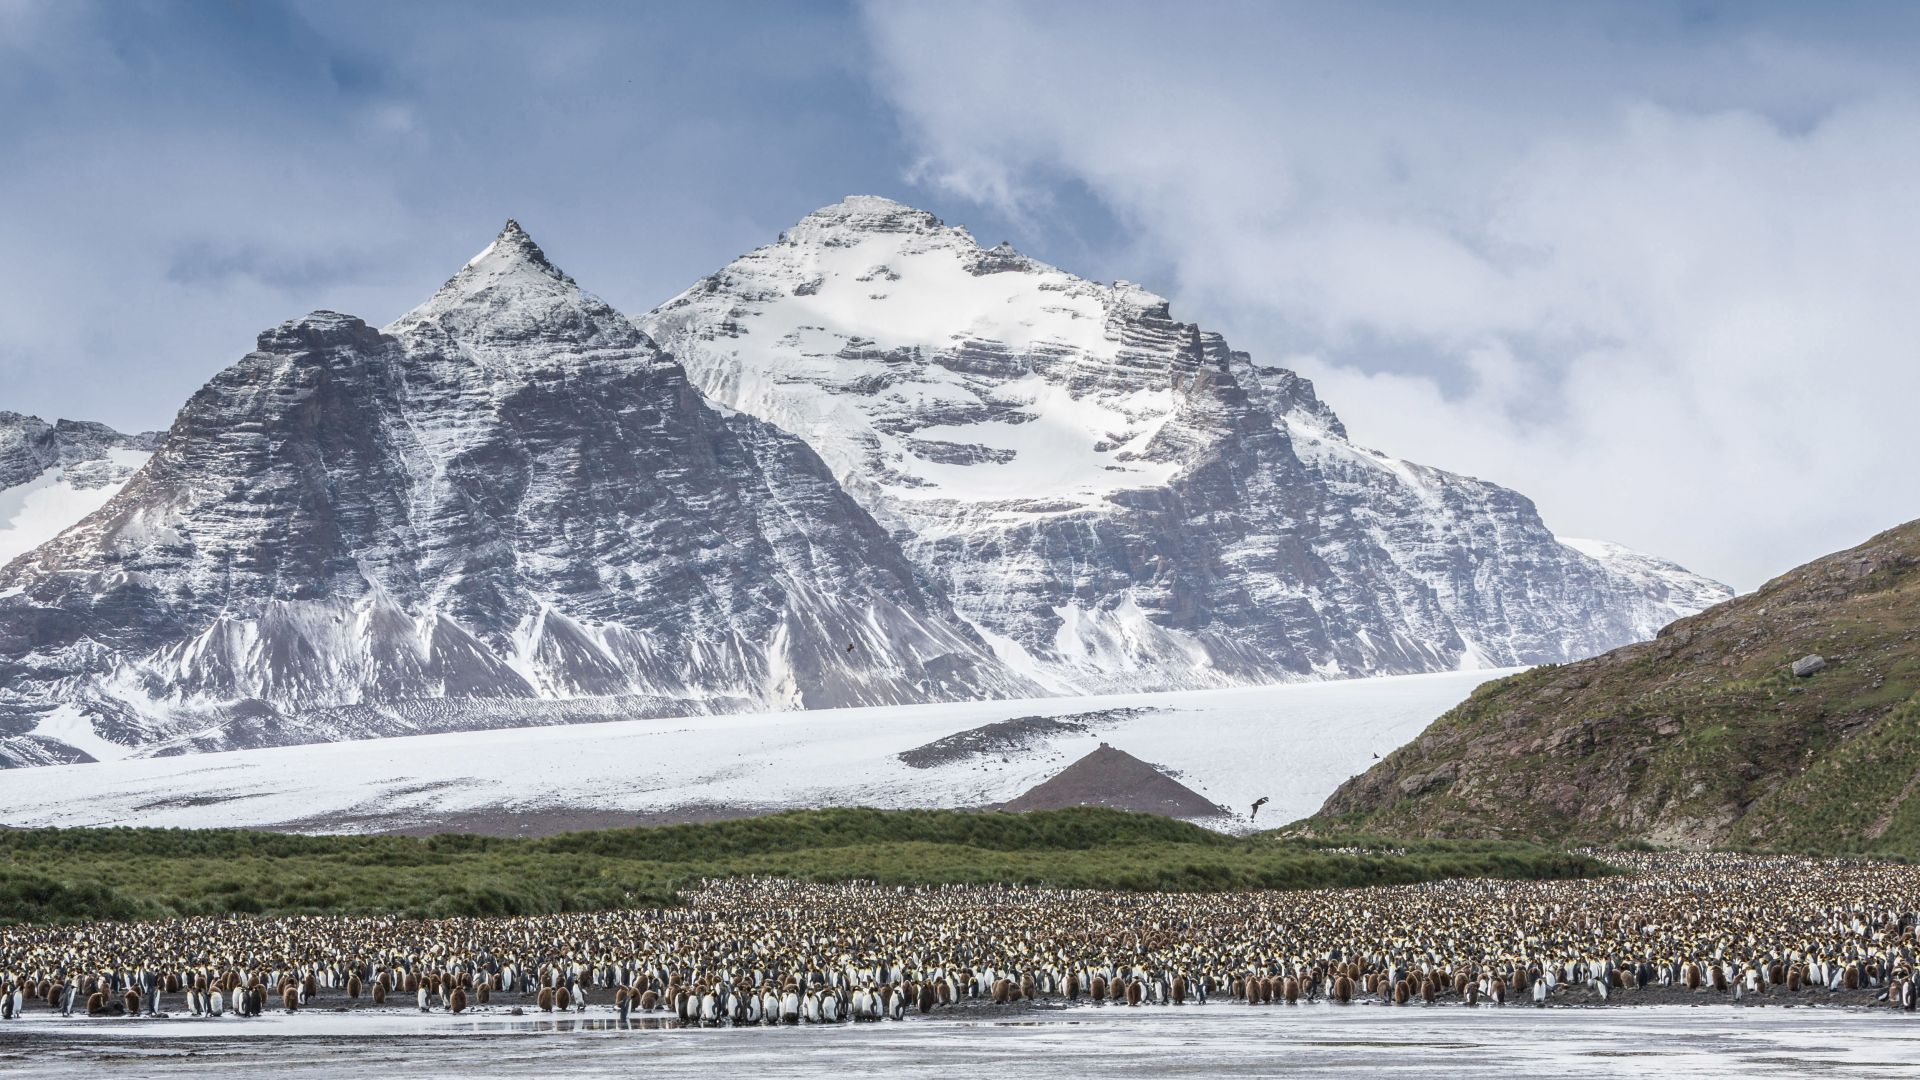 Антарктида, пингвины, Antarctica, mountains, penguins, 5k (horizontal)